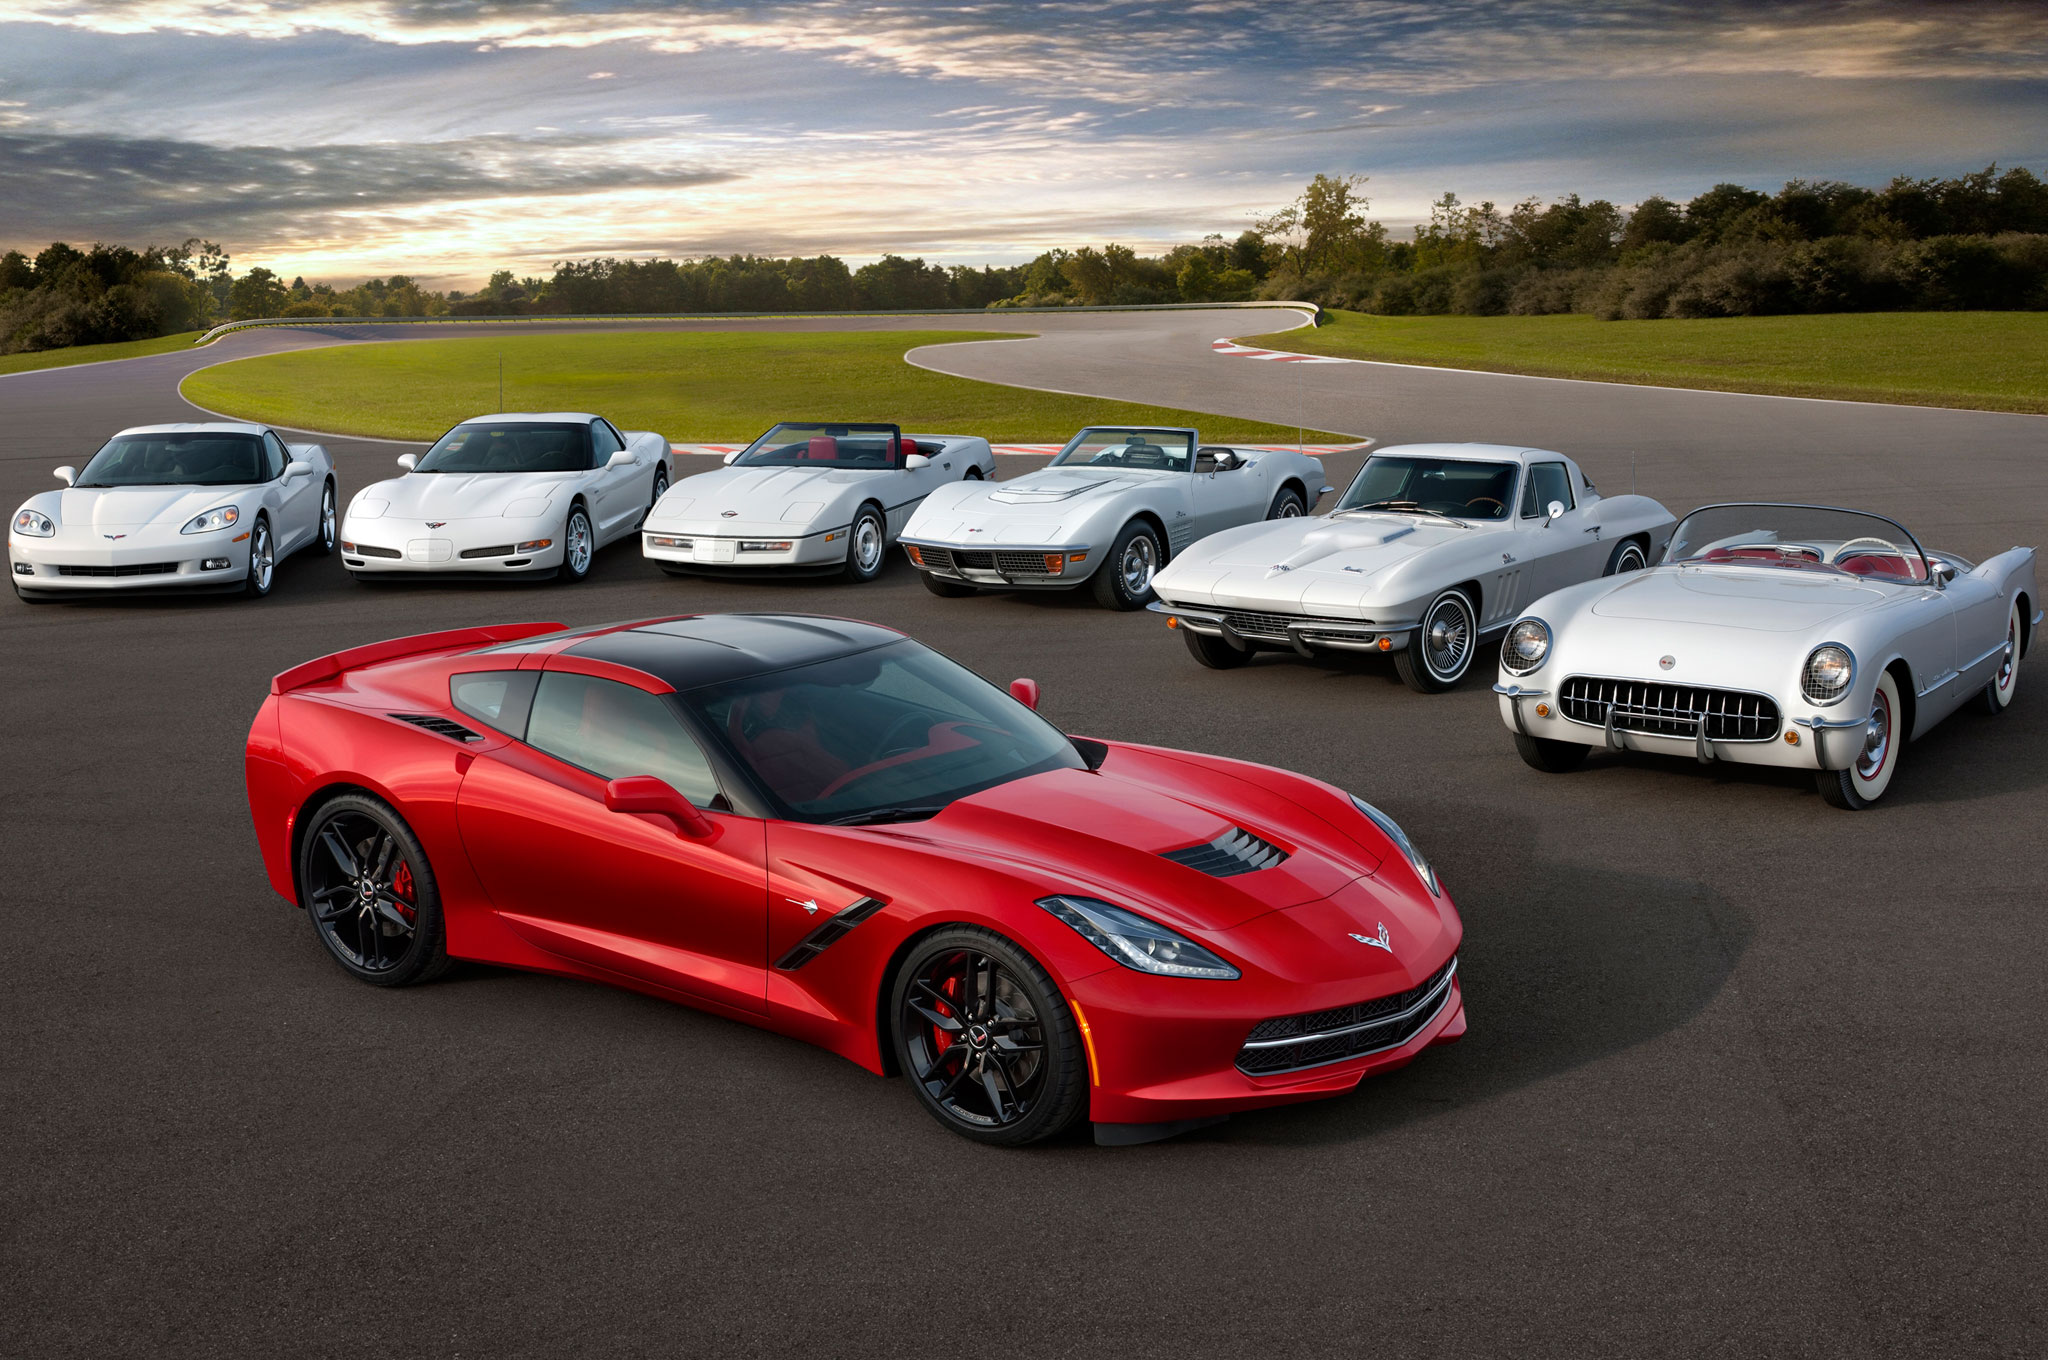 Chevrolet Corvette 7 Generations1